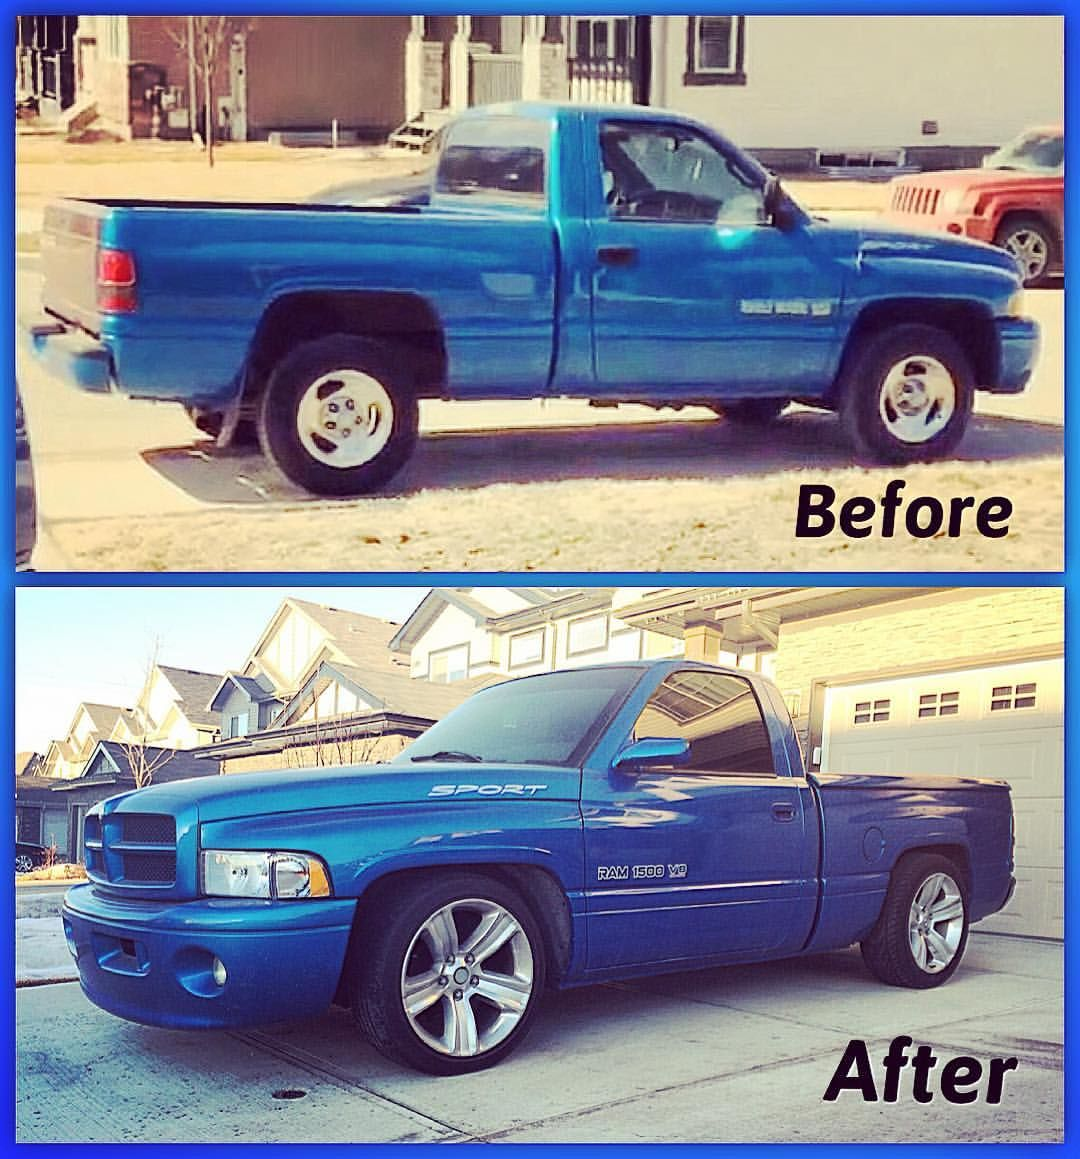 Dgaf On Instagram Progresspic Projectvehicle Ram Dodge Sporttruck Ramsport Mopar Yeg Lowered Djm Tr Dodge Trucks Dodge Ram Diesel Dodge Trucks Ram